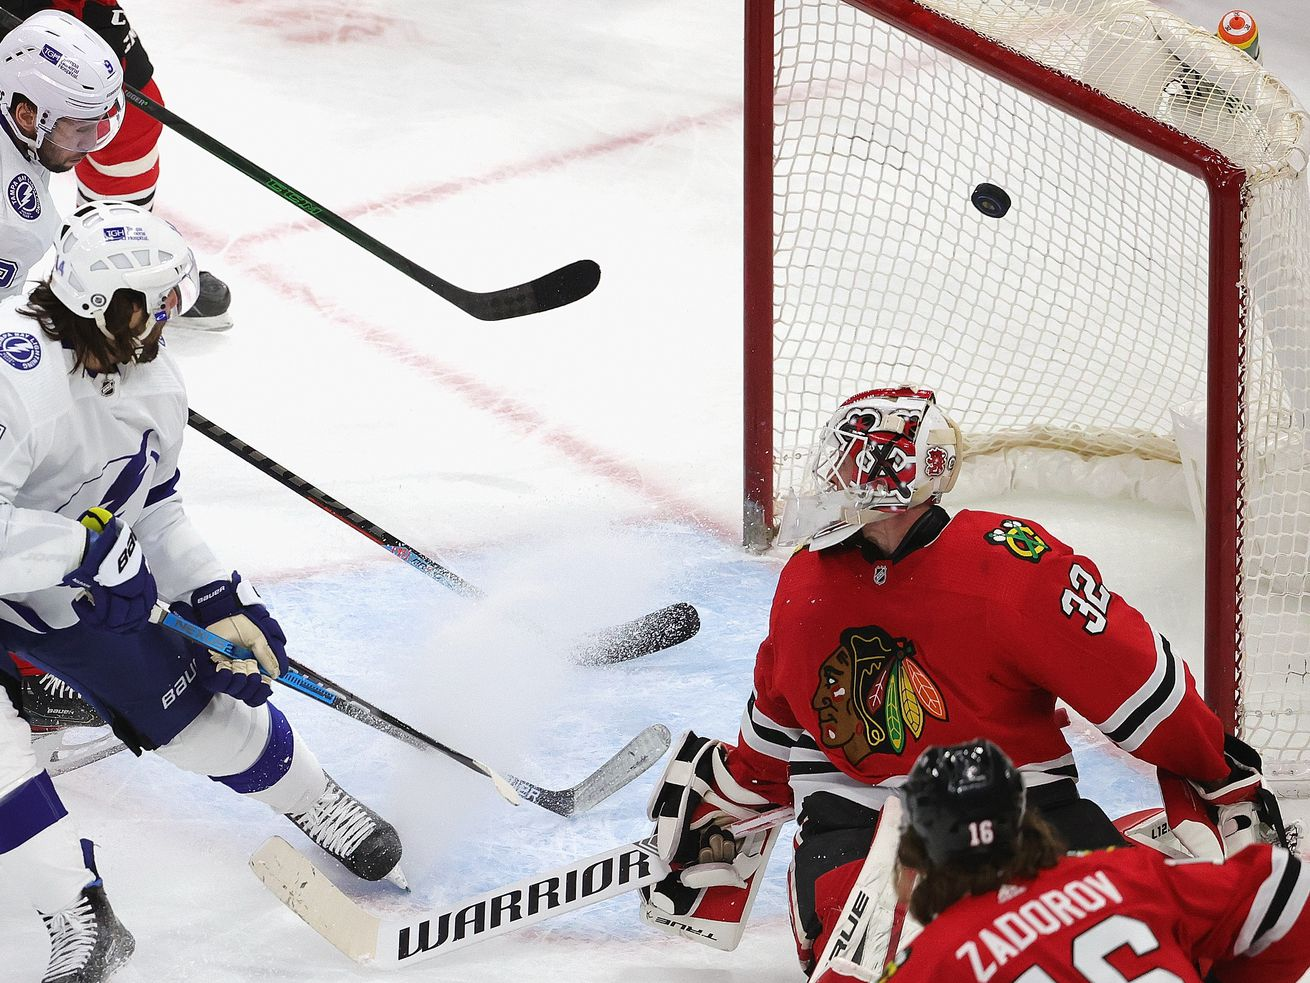 Blackhawks' inability to protect leads reaches new extreme in 6-3 loss to Lightning